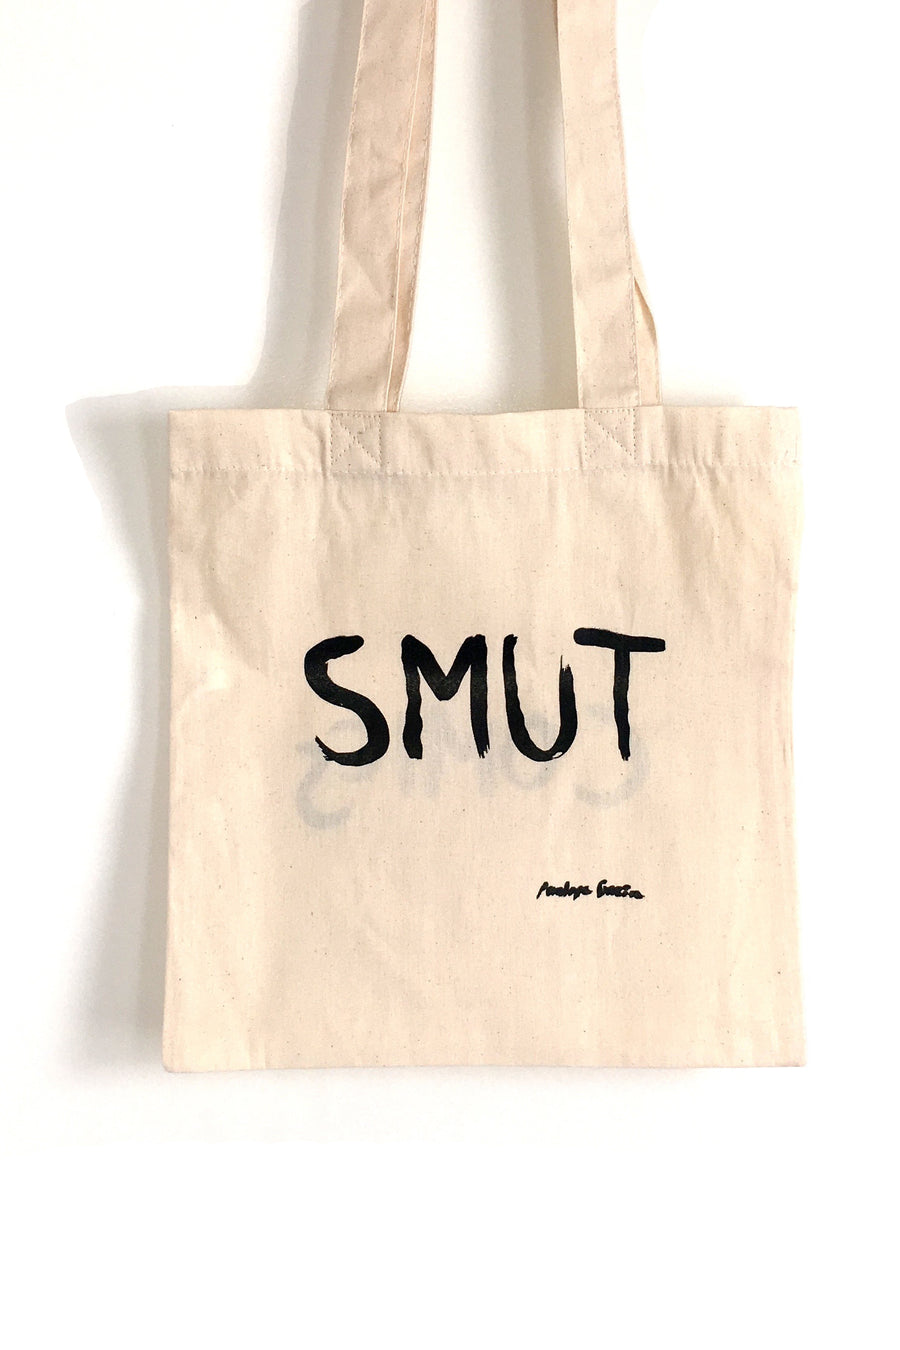 The Bag of Smut